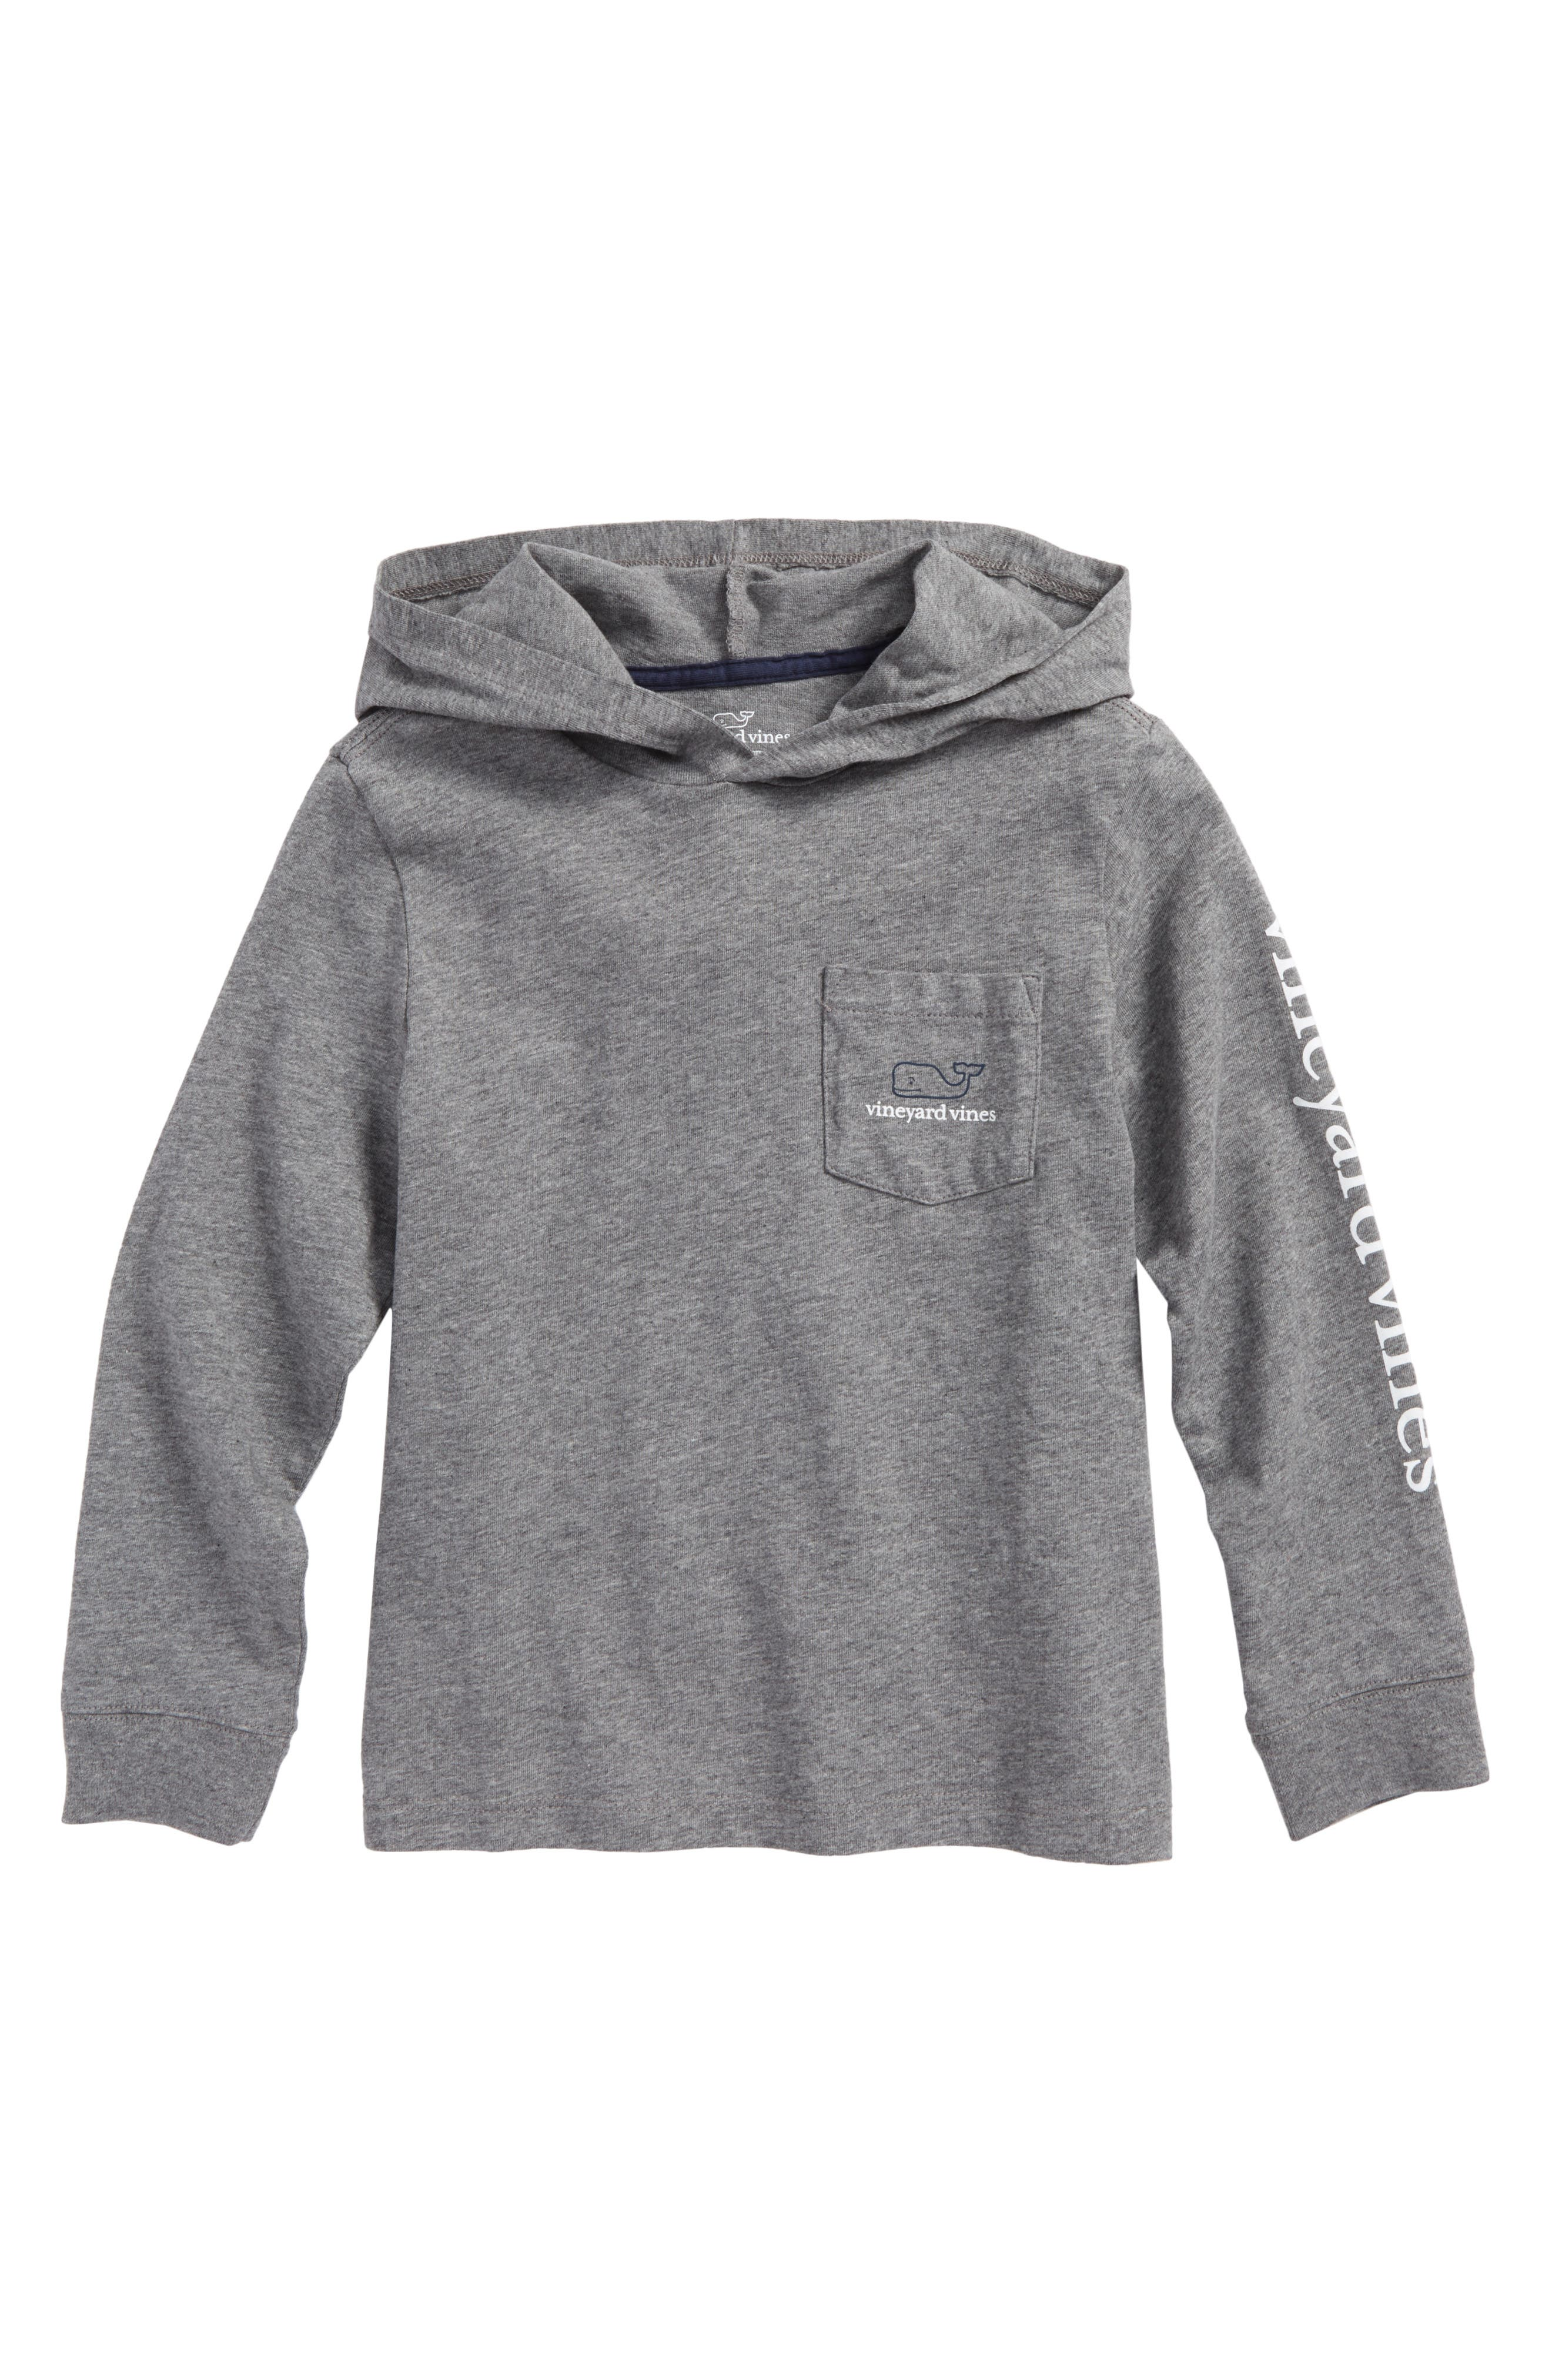 Two-Tone Whale Hooded T-Shirt,                         Main,                         color, Medium Heather Gray